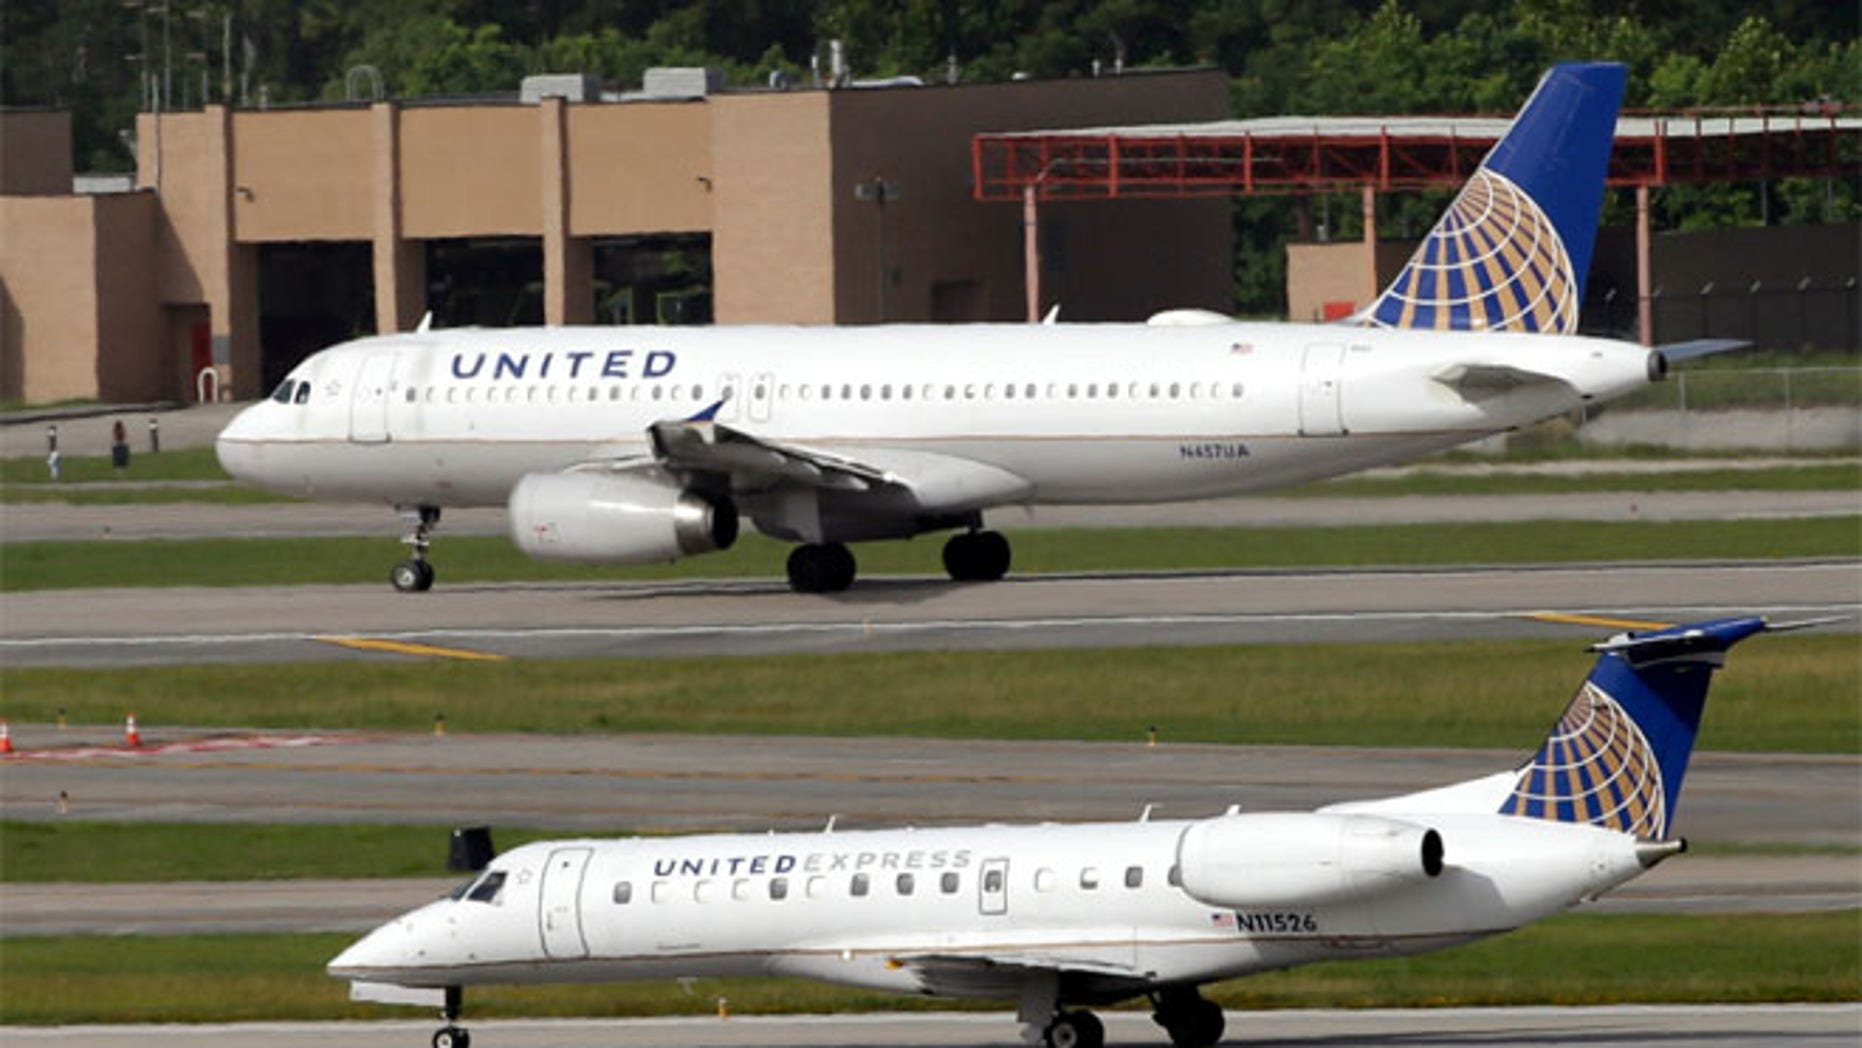 FILE: United Airlines planes seen at the George Bush International Airport in Houston, Texas.